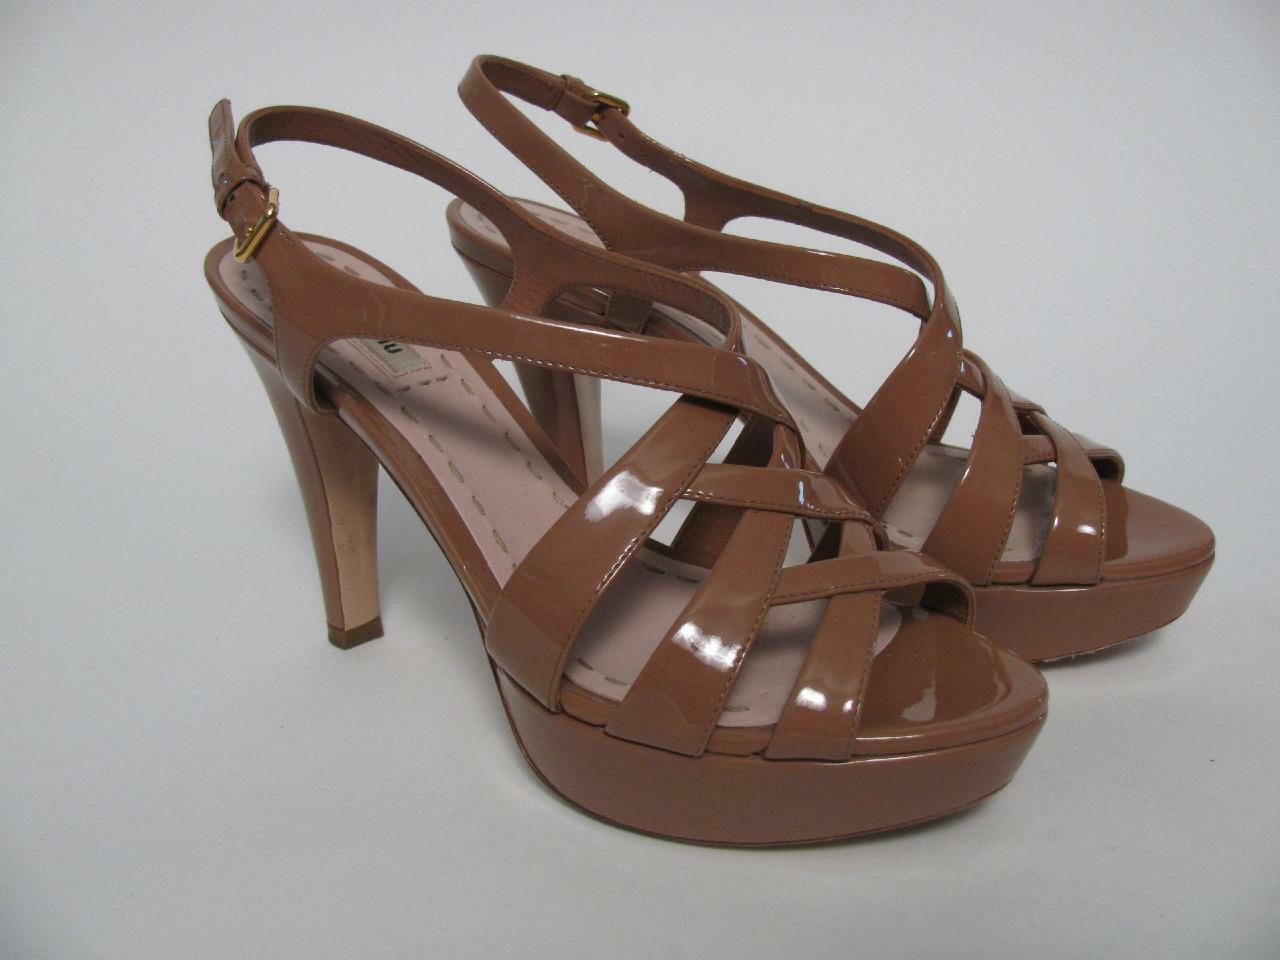 MIU MIU PRADA ITALY SEXY STRAPPY PLATFORM SANDAL PATENT LEATHER SHOES~38